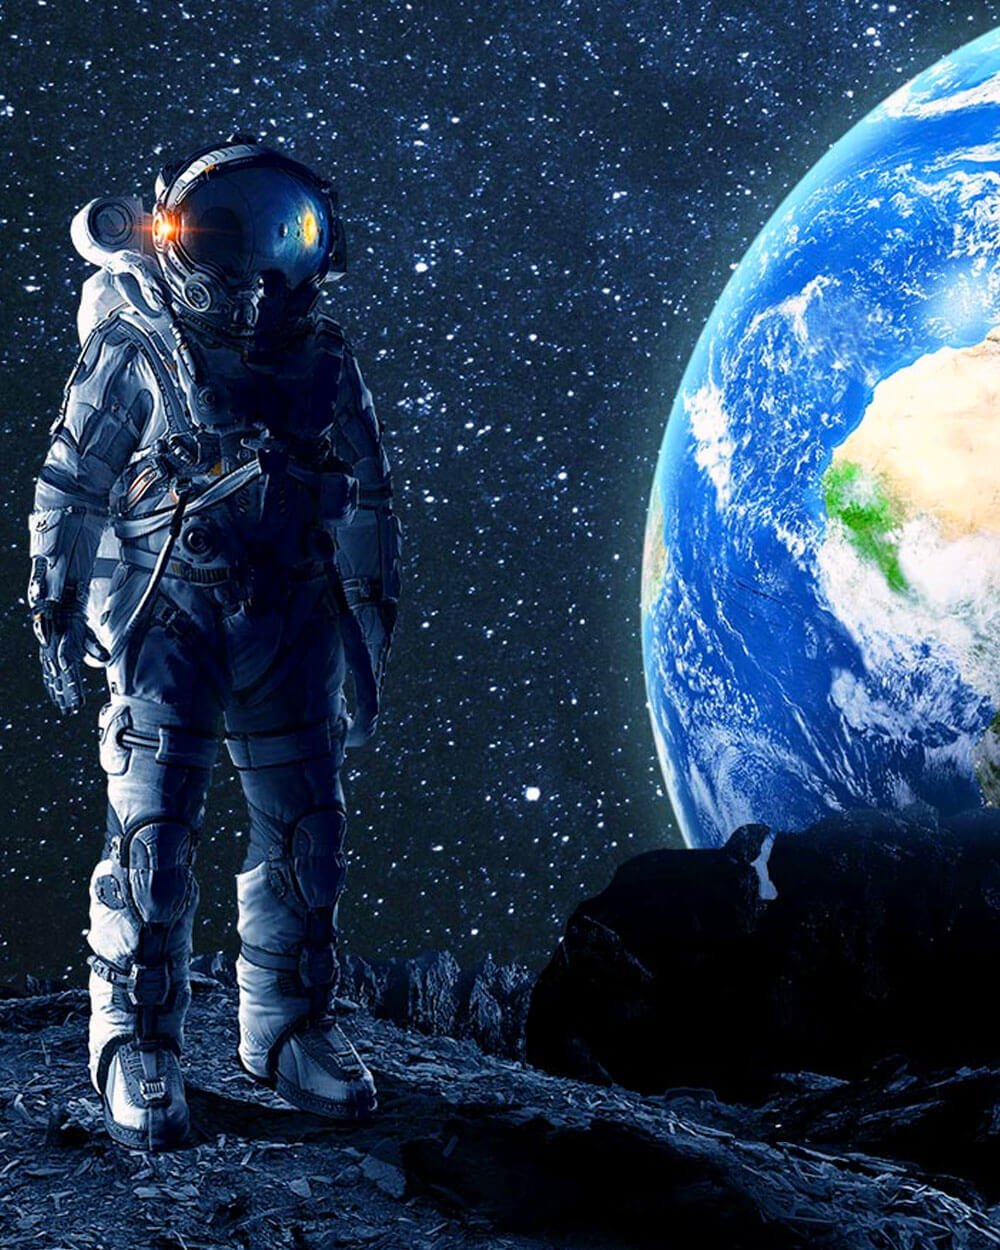 recreating smell of space - an astronaut standing on the moon with the earth's view